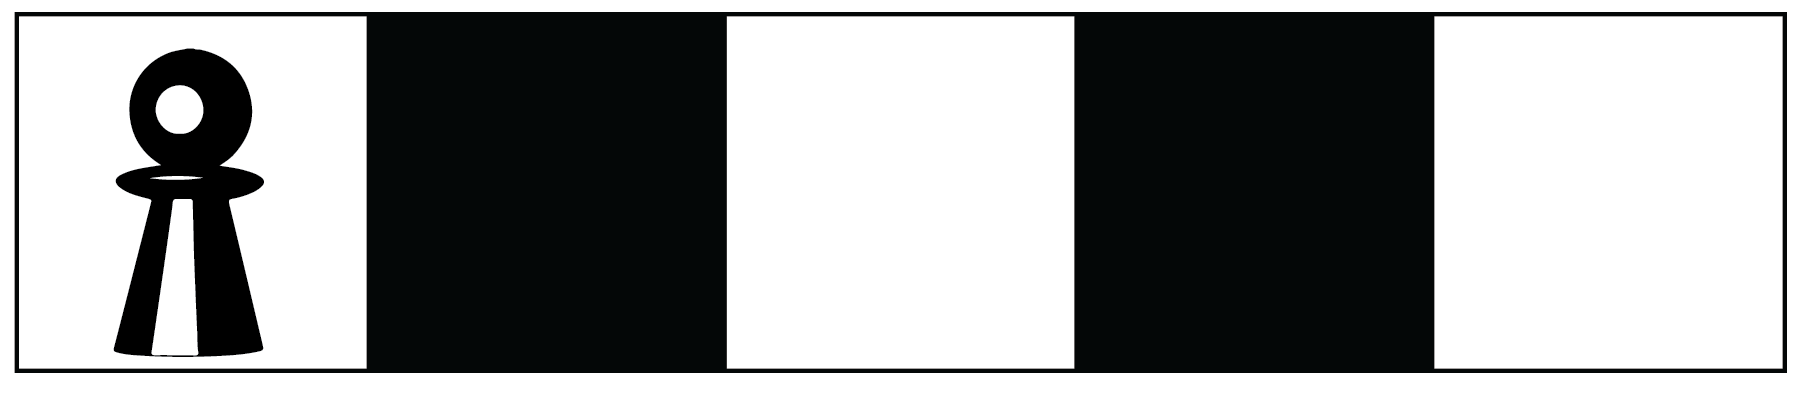 A game board with one row of alternating white and black squares. There are five squares in total and the board begins and ends with a white square. A playing piece is located on the first white square.